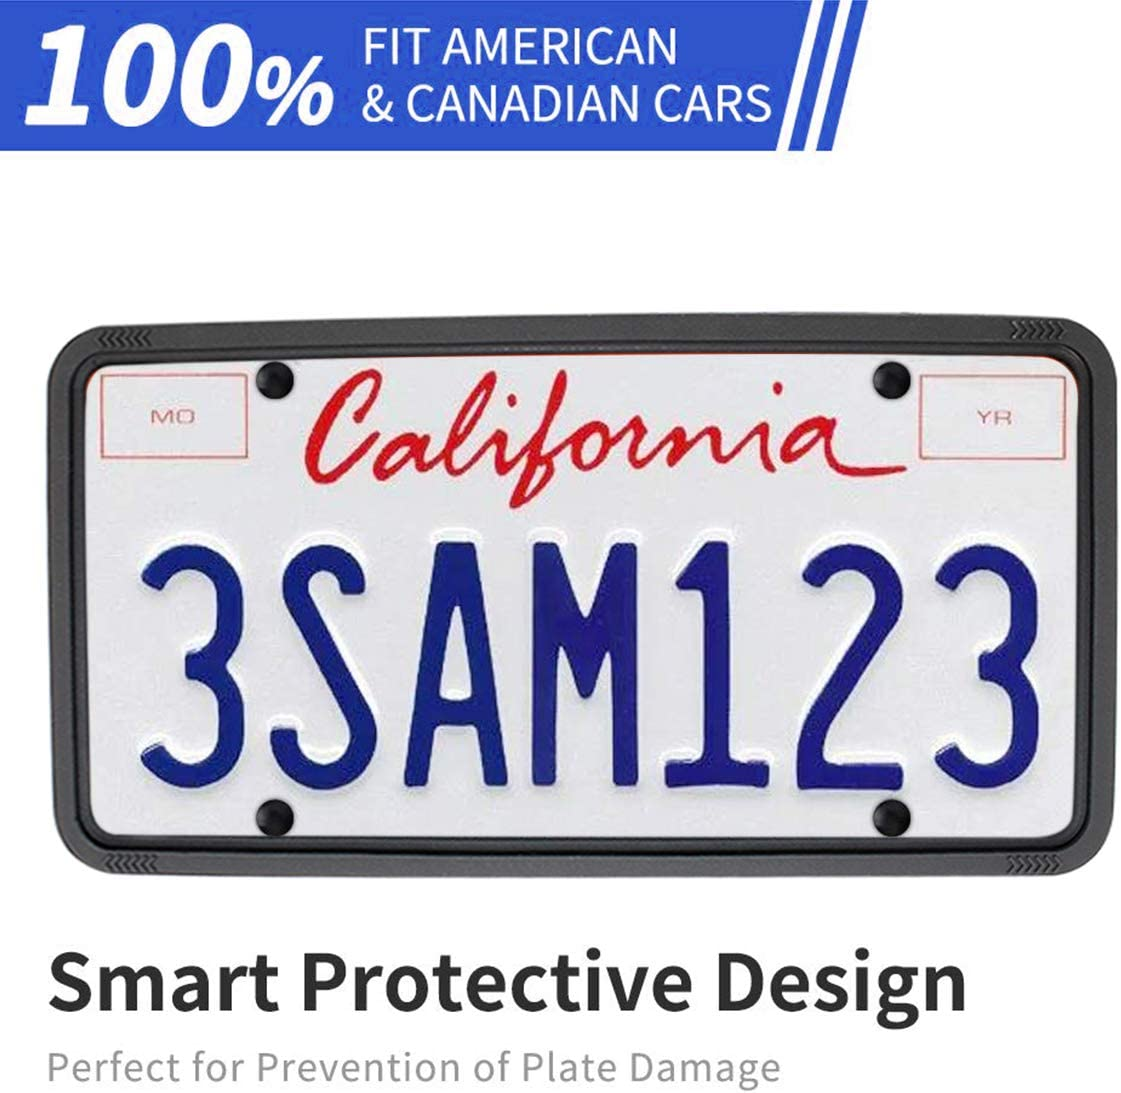 Gray wesport Silicone License Plate Frames Universal Applicable to US Standard Cars Rattle-Proof Weather-Proof License Plate Covers Holders